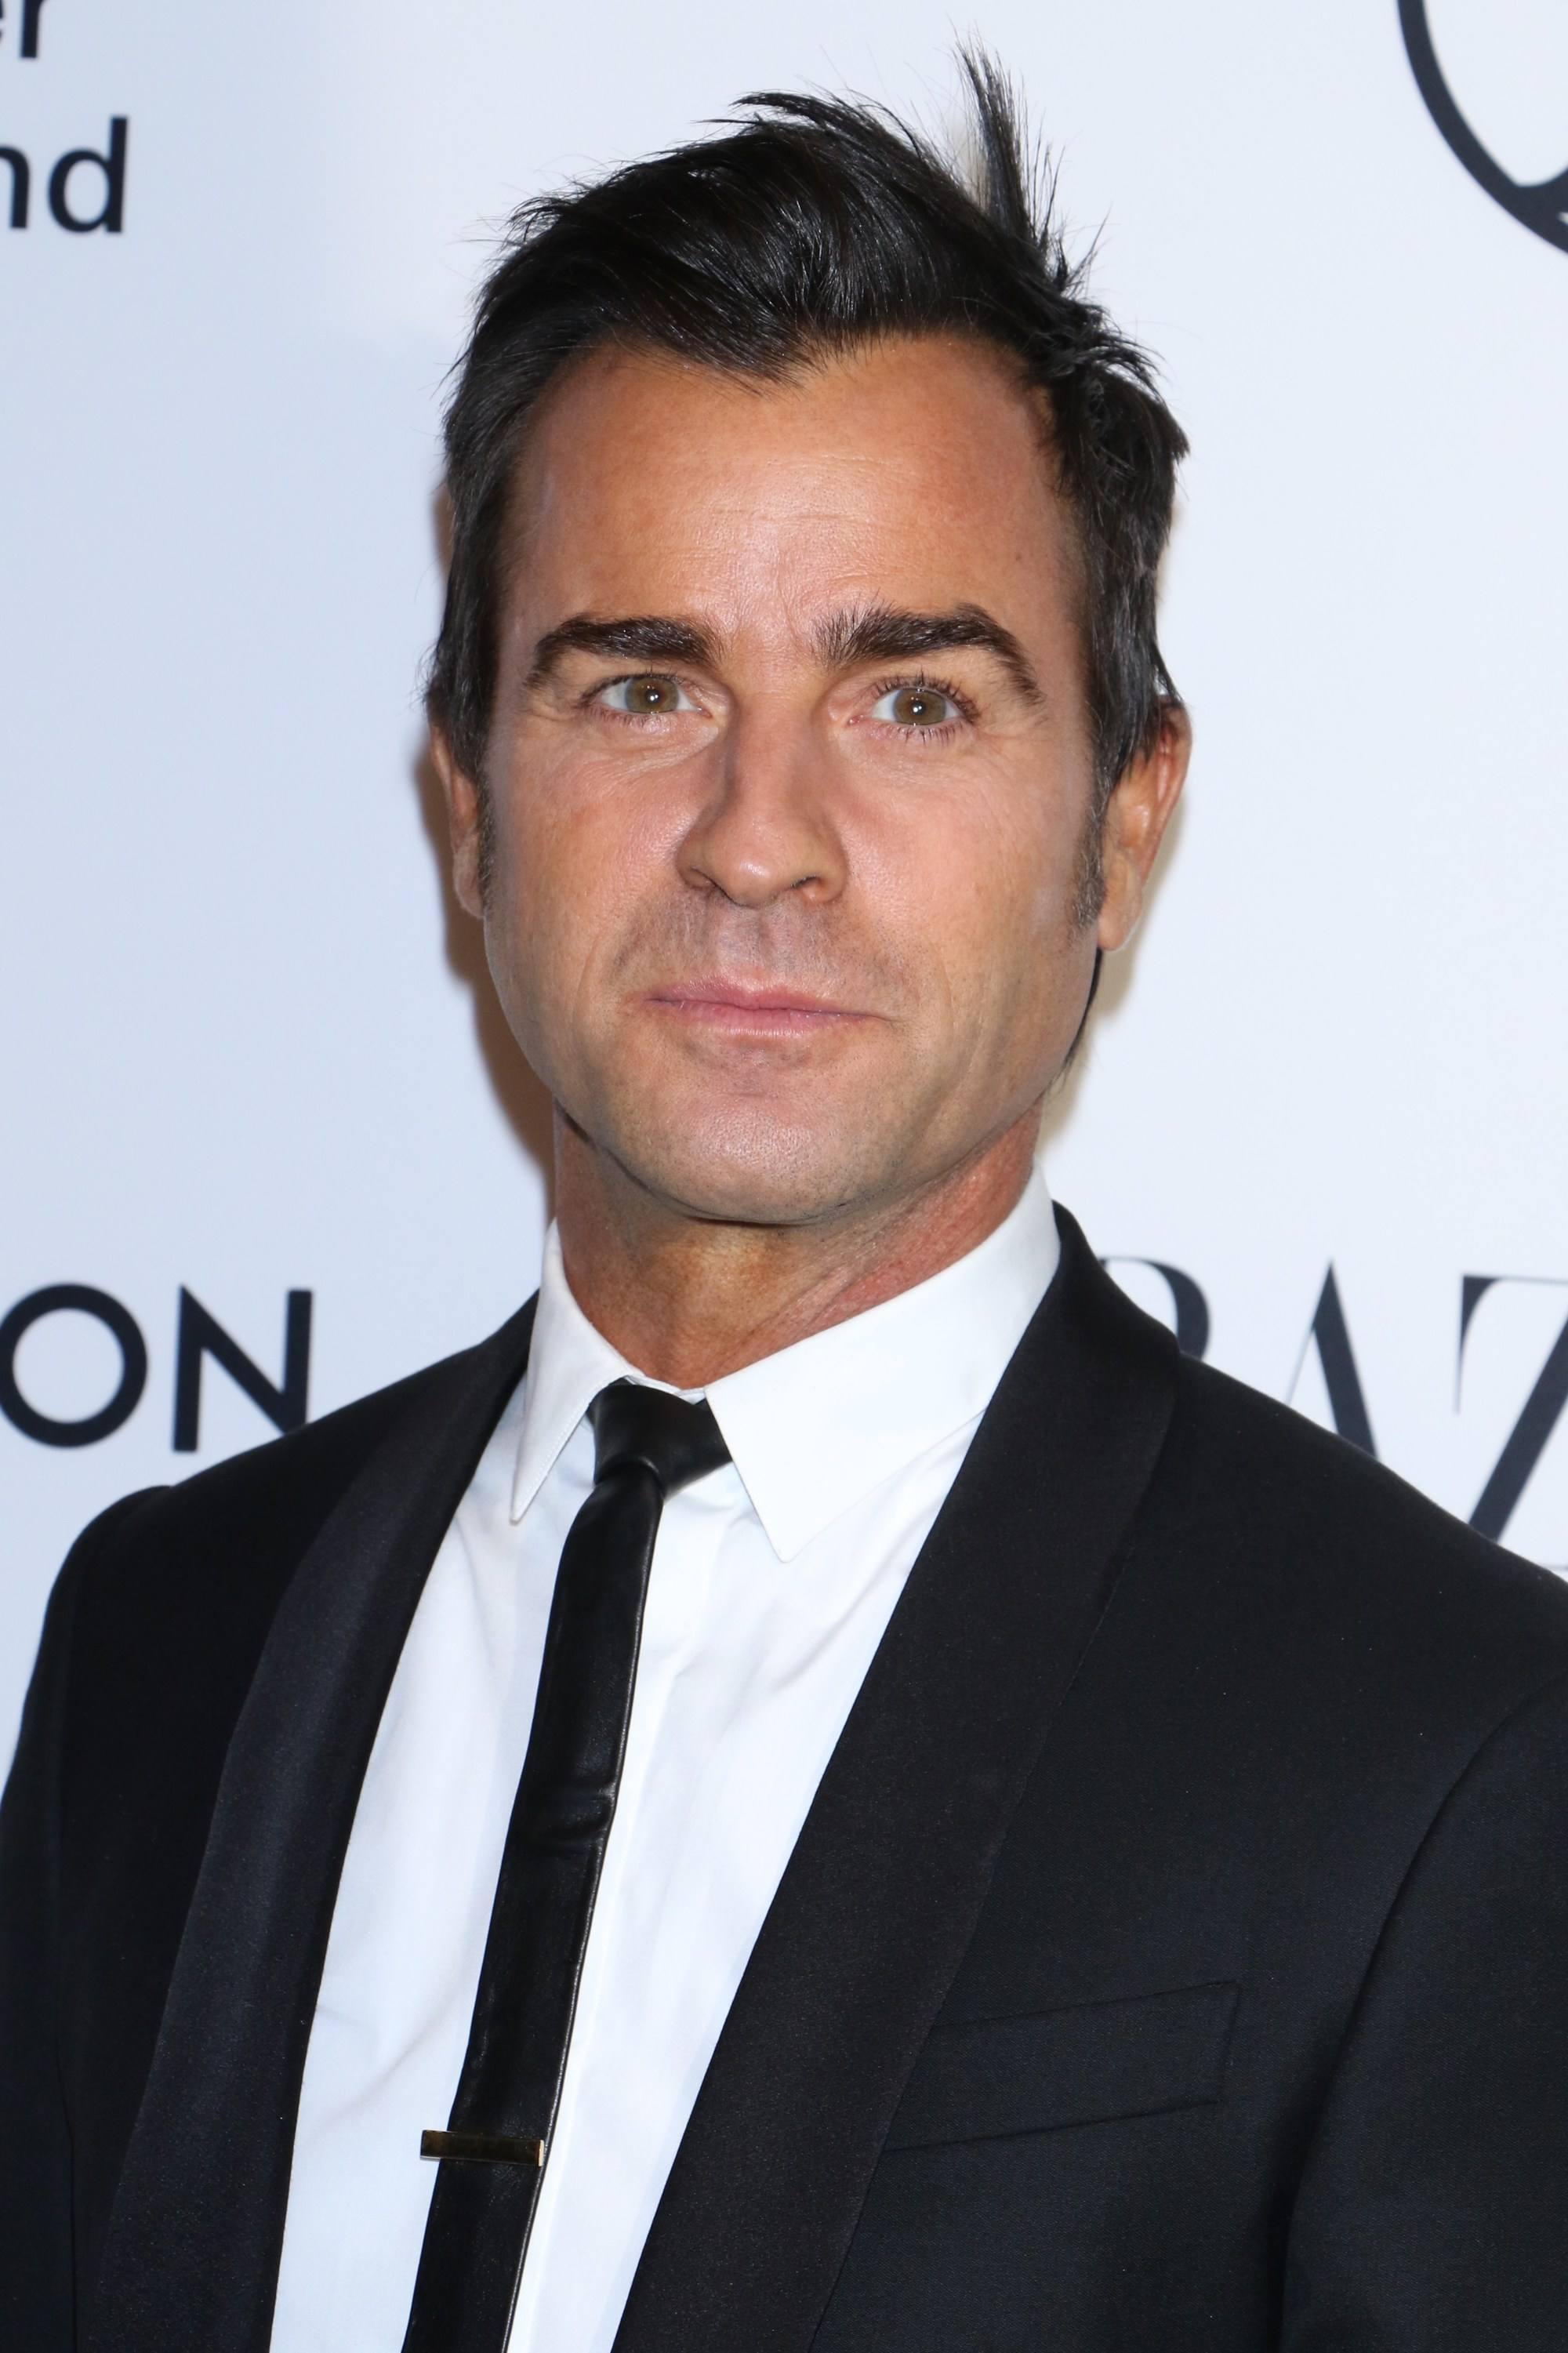 Hairstyles for men with thin hair: Justin Theroux wearing a suit and black tie with a short choppy haircut